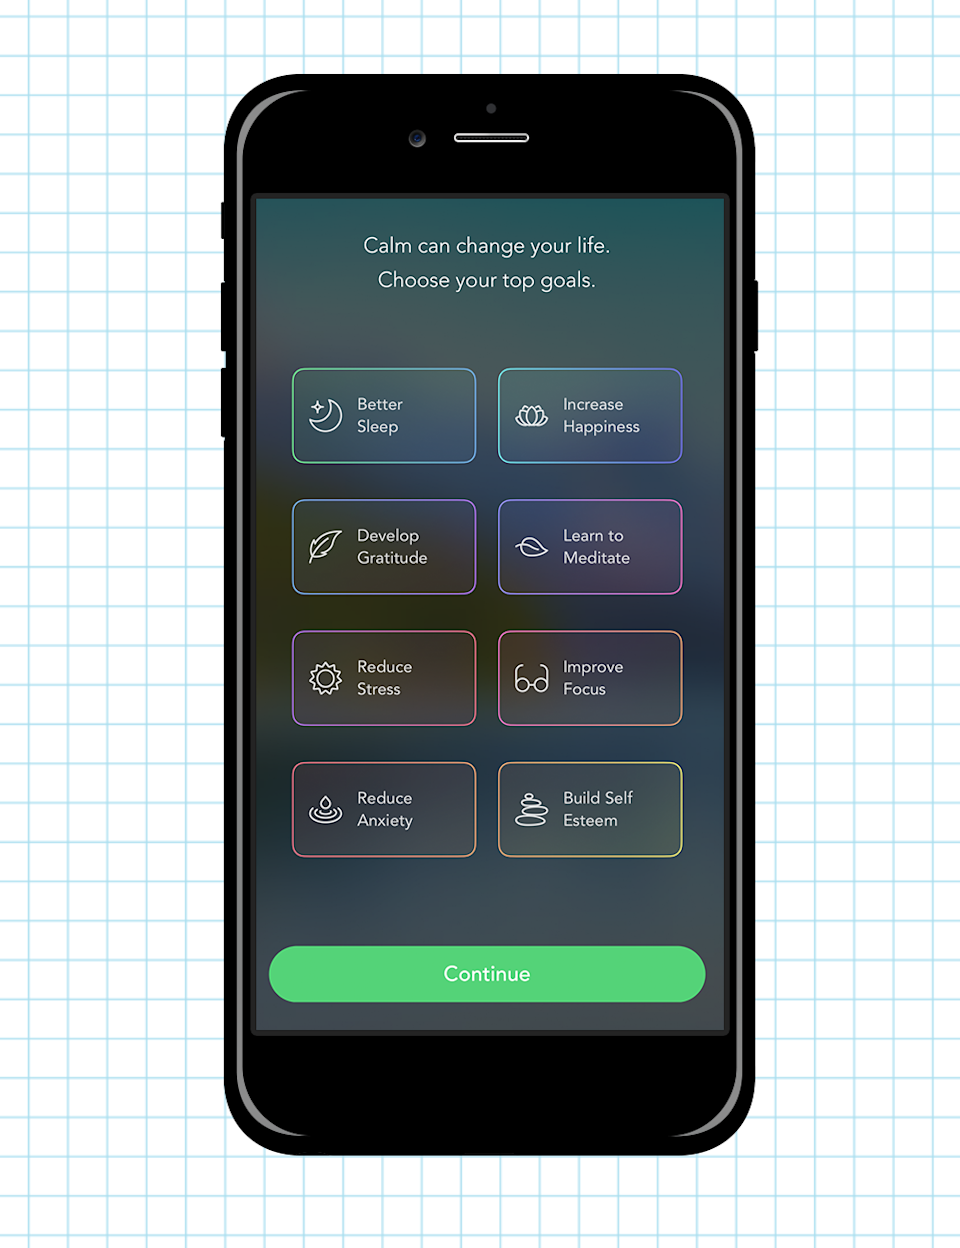 """<p><a href=""""https://www.calm.com/"""" rel=""""nofollow noopener"""" target=""""_blank"""" data-ylk=""""slk:Calm's app"""" class=""""link rapid-noclick-resp"""">Calm's app</a> is super easy to use, and the Sleep Stories section has bedtime stories (for kids <em>and </em>adults!) read aloud by people with soothing voices, including celebrities like Matthew McConaughey. Only a few stories are included for free, but getting a subscription unlocks a huge library of meditations made specifically for sleep — plus categories like stress and ASMR!</p><p><strong>Cost:</strong> free for some features; $70/year for full access (includes a seven-day free trial)</p><p><strong>Get it for <a href=""""https://go.redirectingat.com?id=74968X1596630&url=https%3A%2F%2Fitunes.apple.com%2Fus%2Fapp%2Fcalm%2Fid571800810&sref=https%3A%2F%2Fwww.goodhousekeeping.com%2Fhealth%2Fwellness%2Fg26963663%2Fbest-sleep-apps%2F"""" rel=""""nofollow noopener"""" target=""""_blank"""" data-ylk=""""slk:iOS"""" class=""""link rapid-noclick-resp"""">iOS</a> or <a href=""""https://play.google.com/store/apps/details?id=com.calm.android"""" rel=""""nofollow noopener"""" target=""""_blank"""" data-ylk=""""slk:Android"""" class=""""link rapid-noclick-resp"""">Android</a>.</strong></p>"""